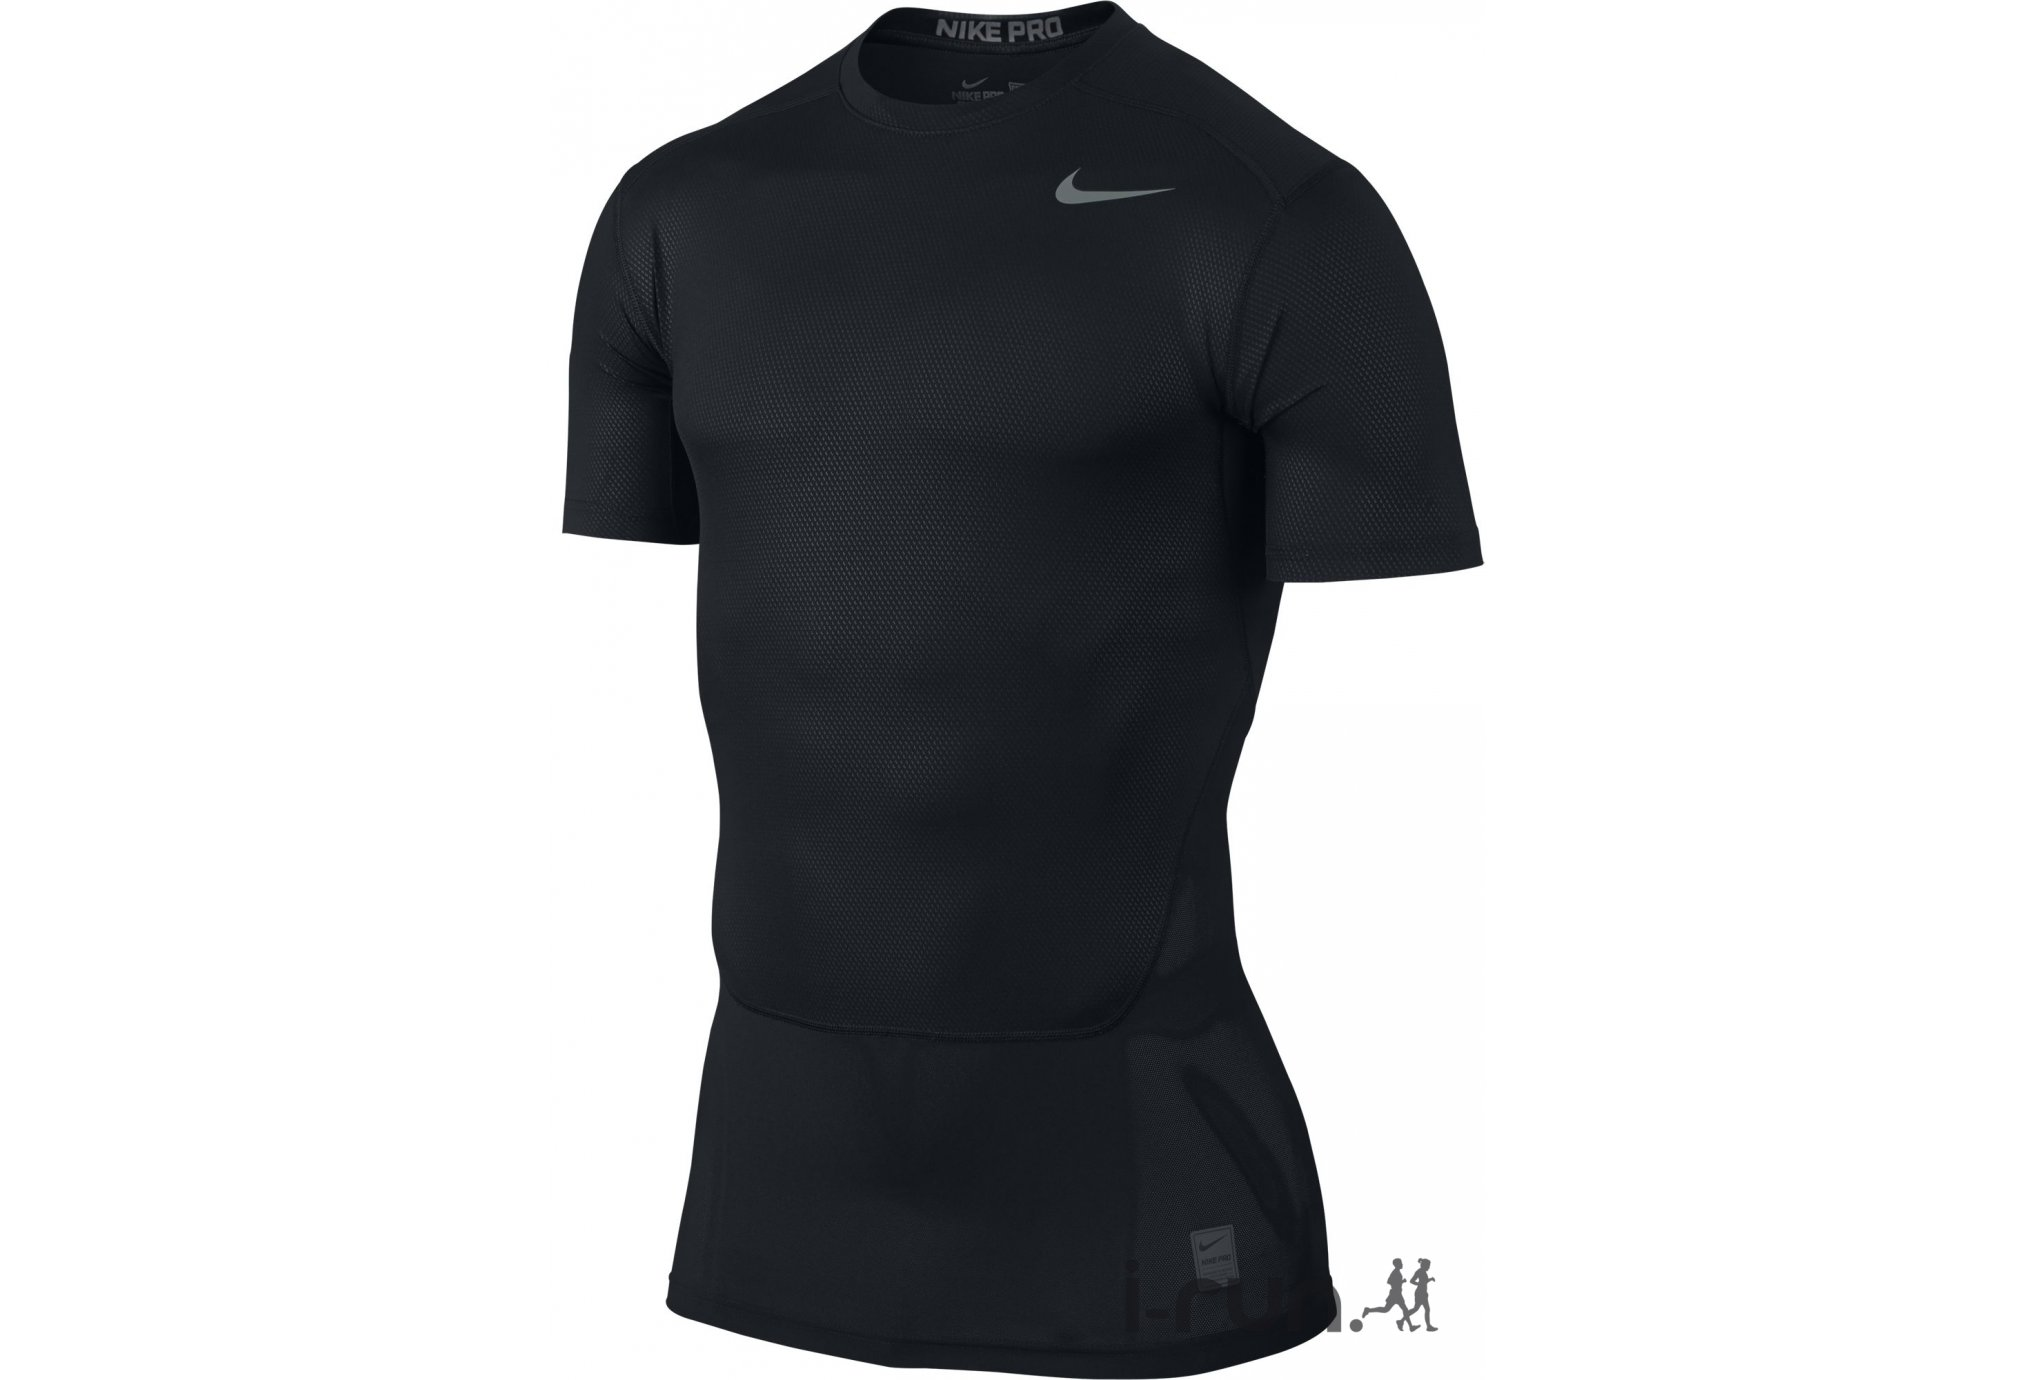 Nike Pro Combat Hypercool 3.0 Graphic M vêtement running homme